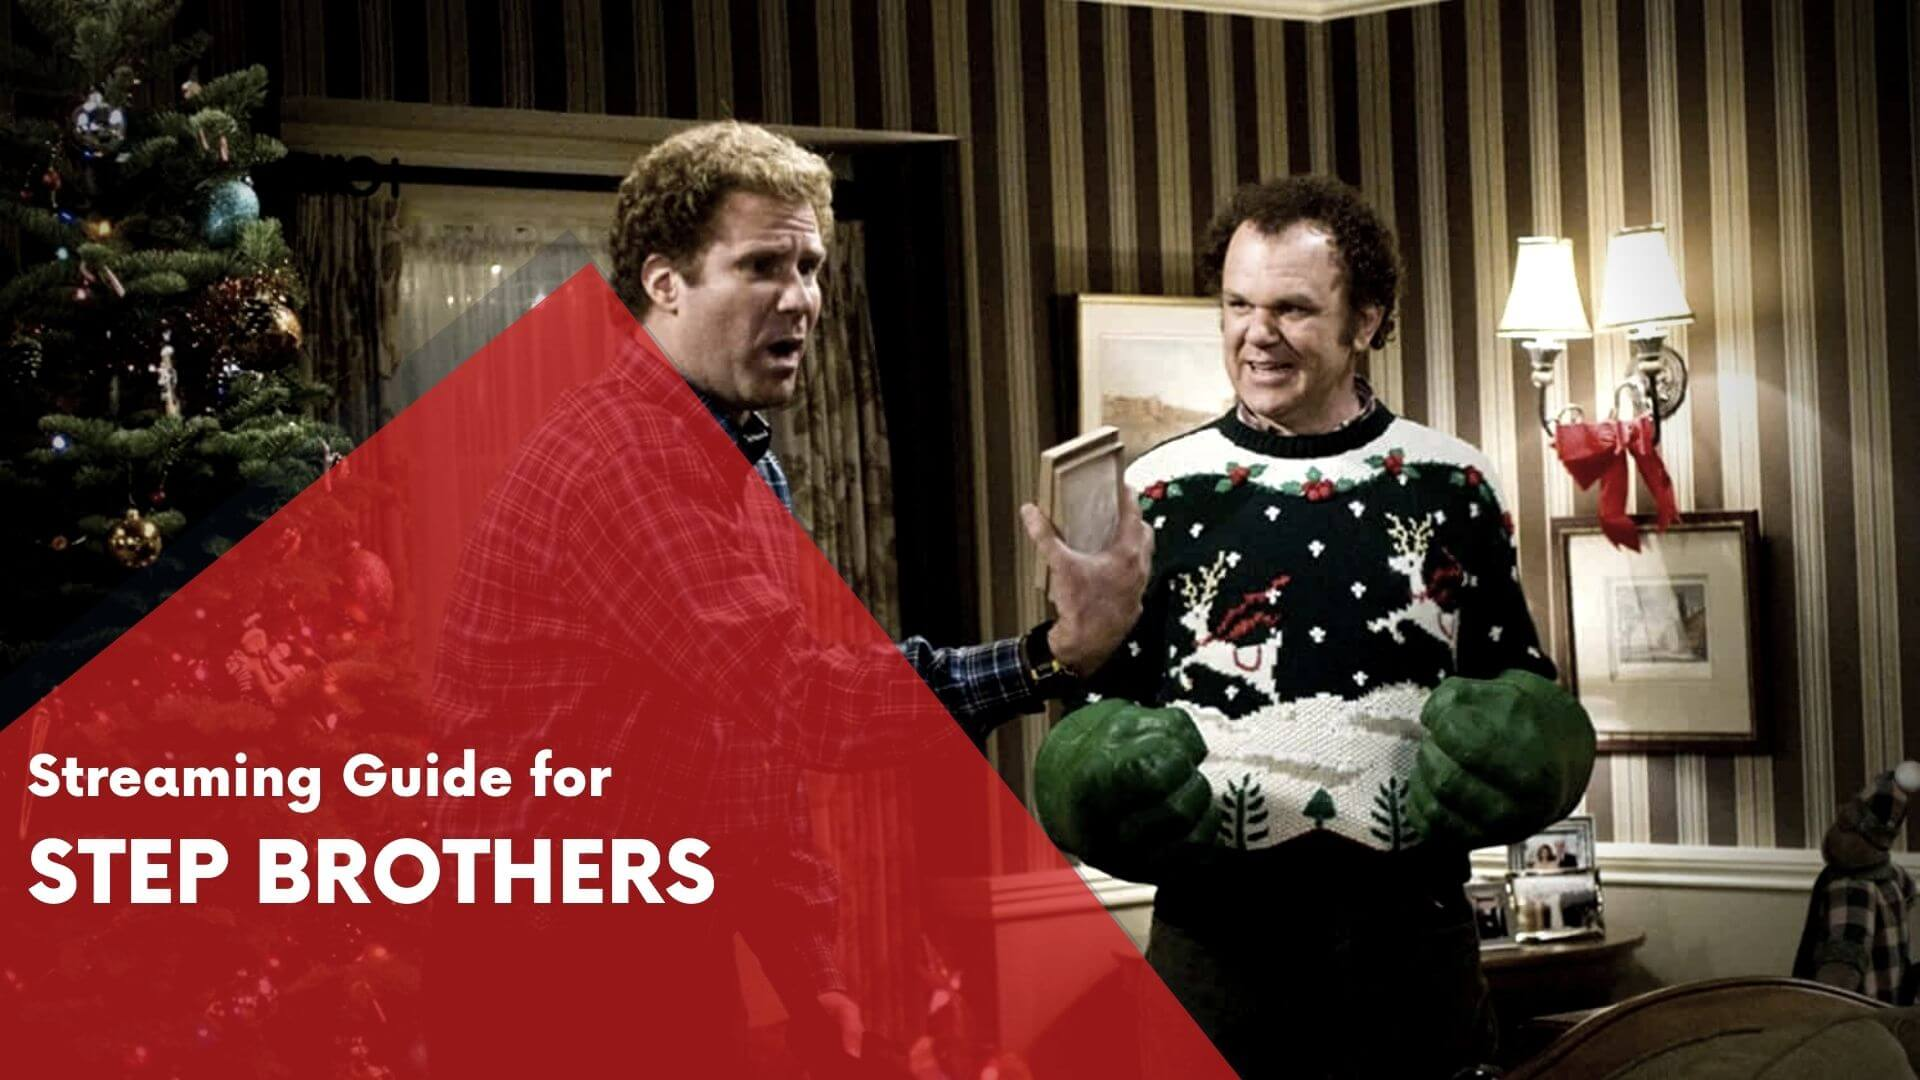 Step Brothers Streaming Guide